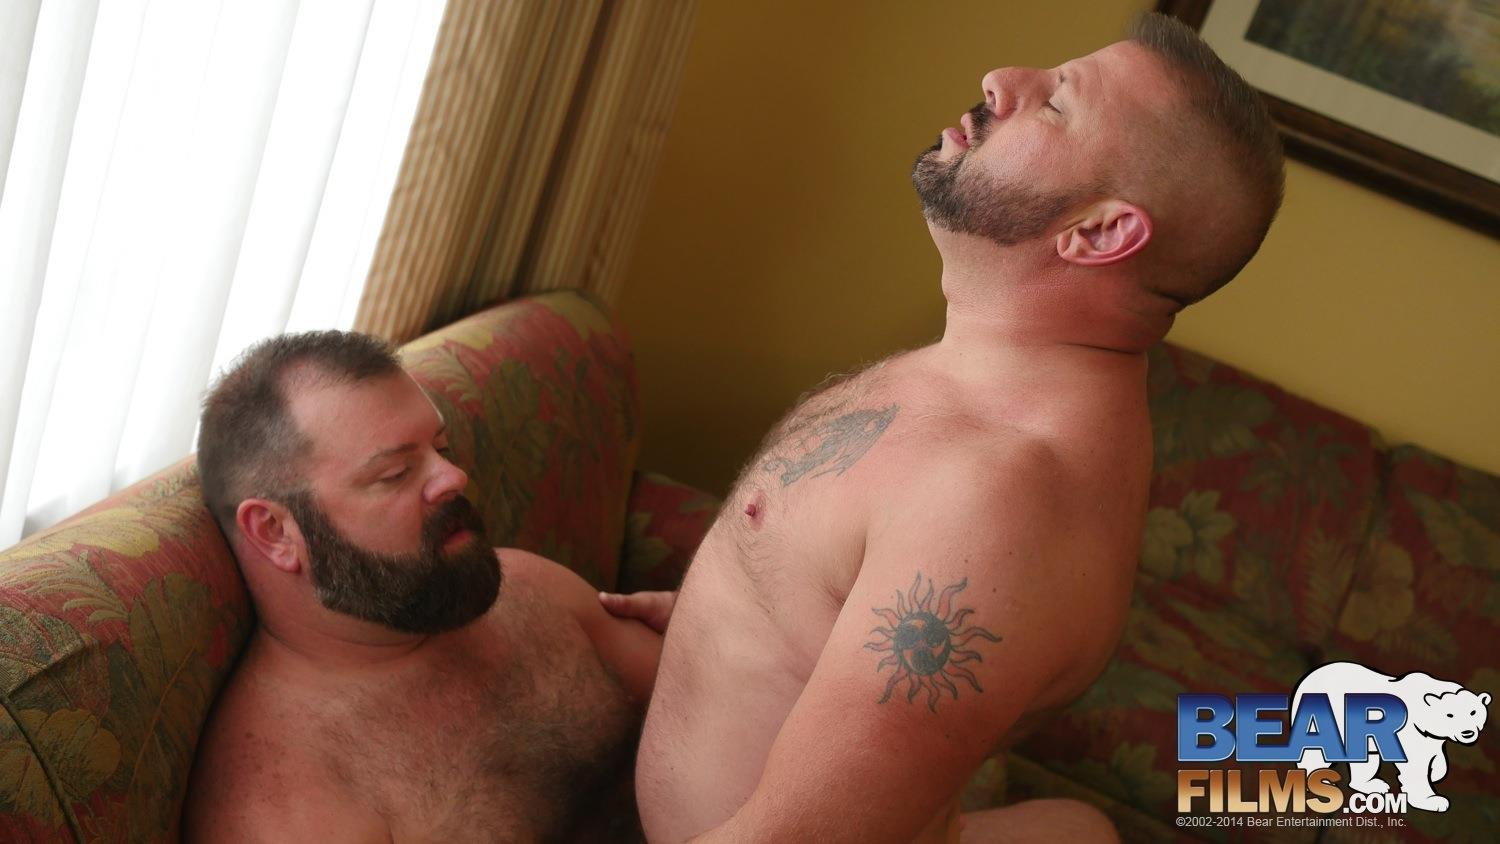 Bareback Chub And Chaser Gay Porn chubby bear gay tumblr - megapornx